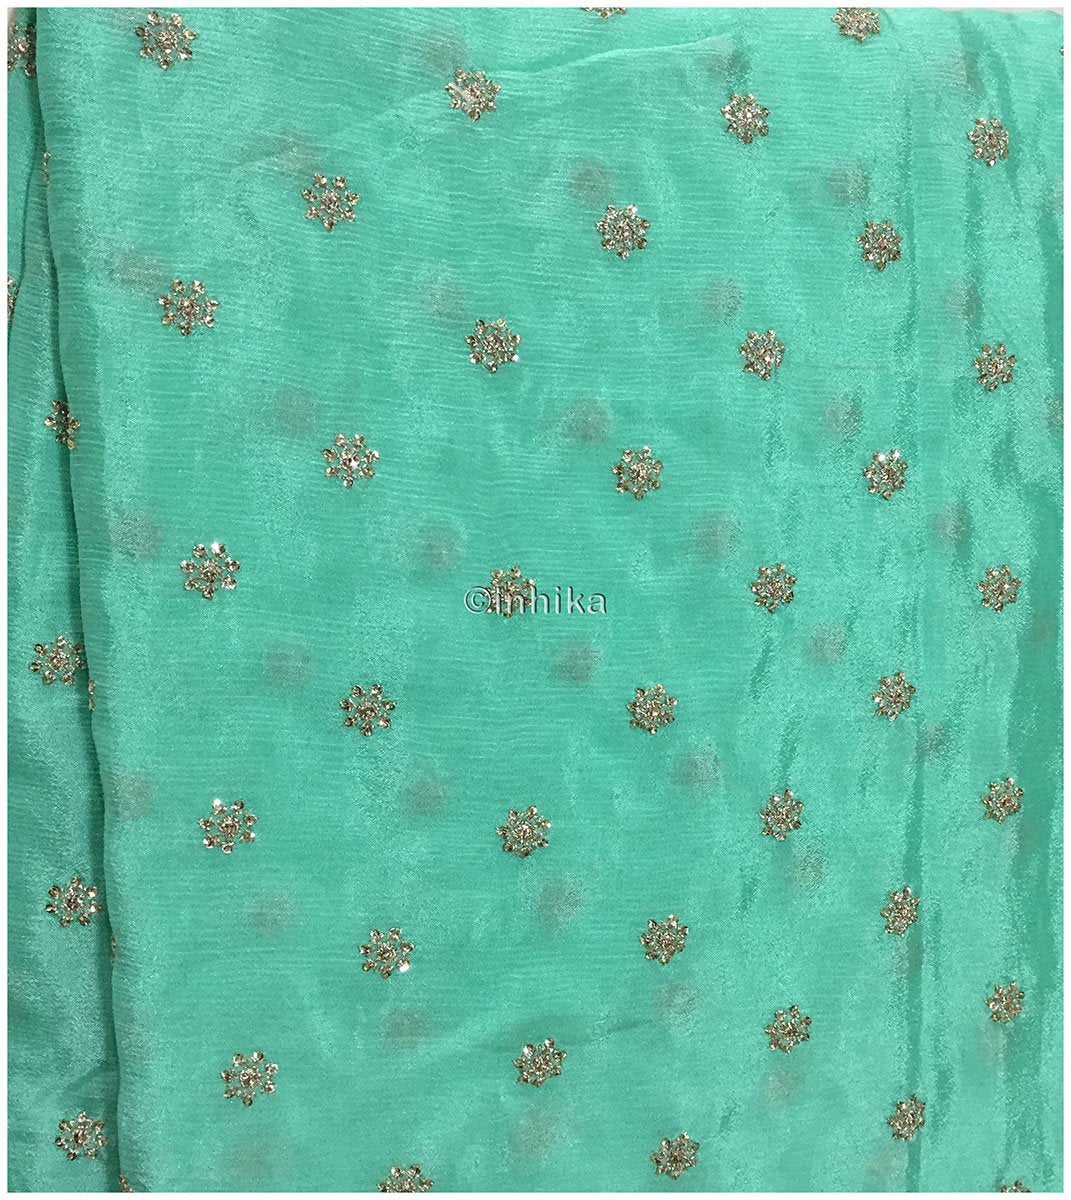 saree fabric online shopping white cloth material online india Embroidery Crepe Sea Green, Silver Sequins 39 inches Wide 9178